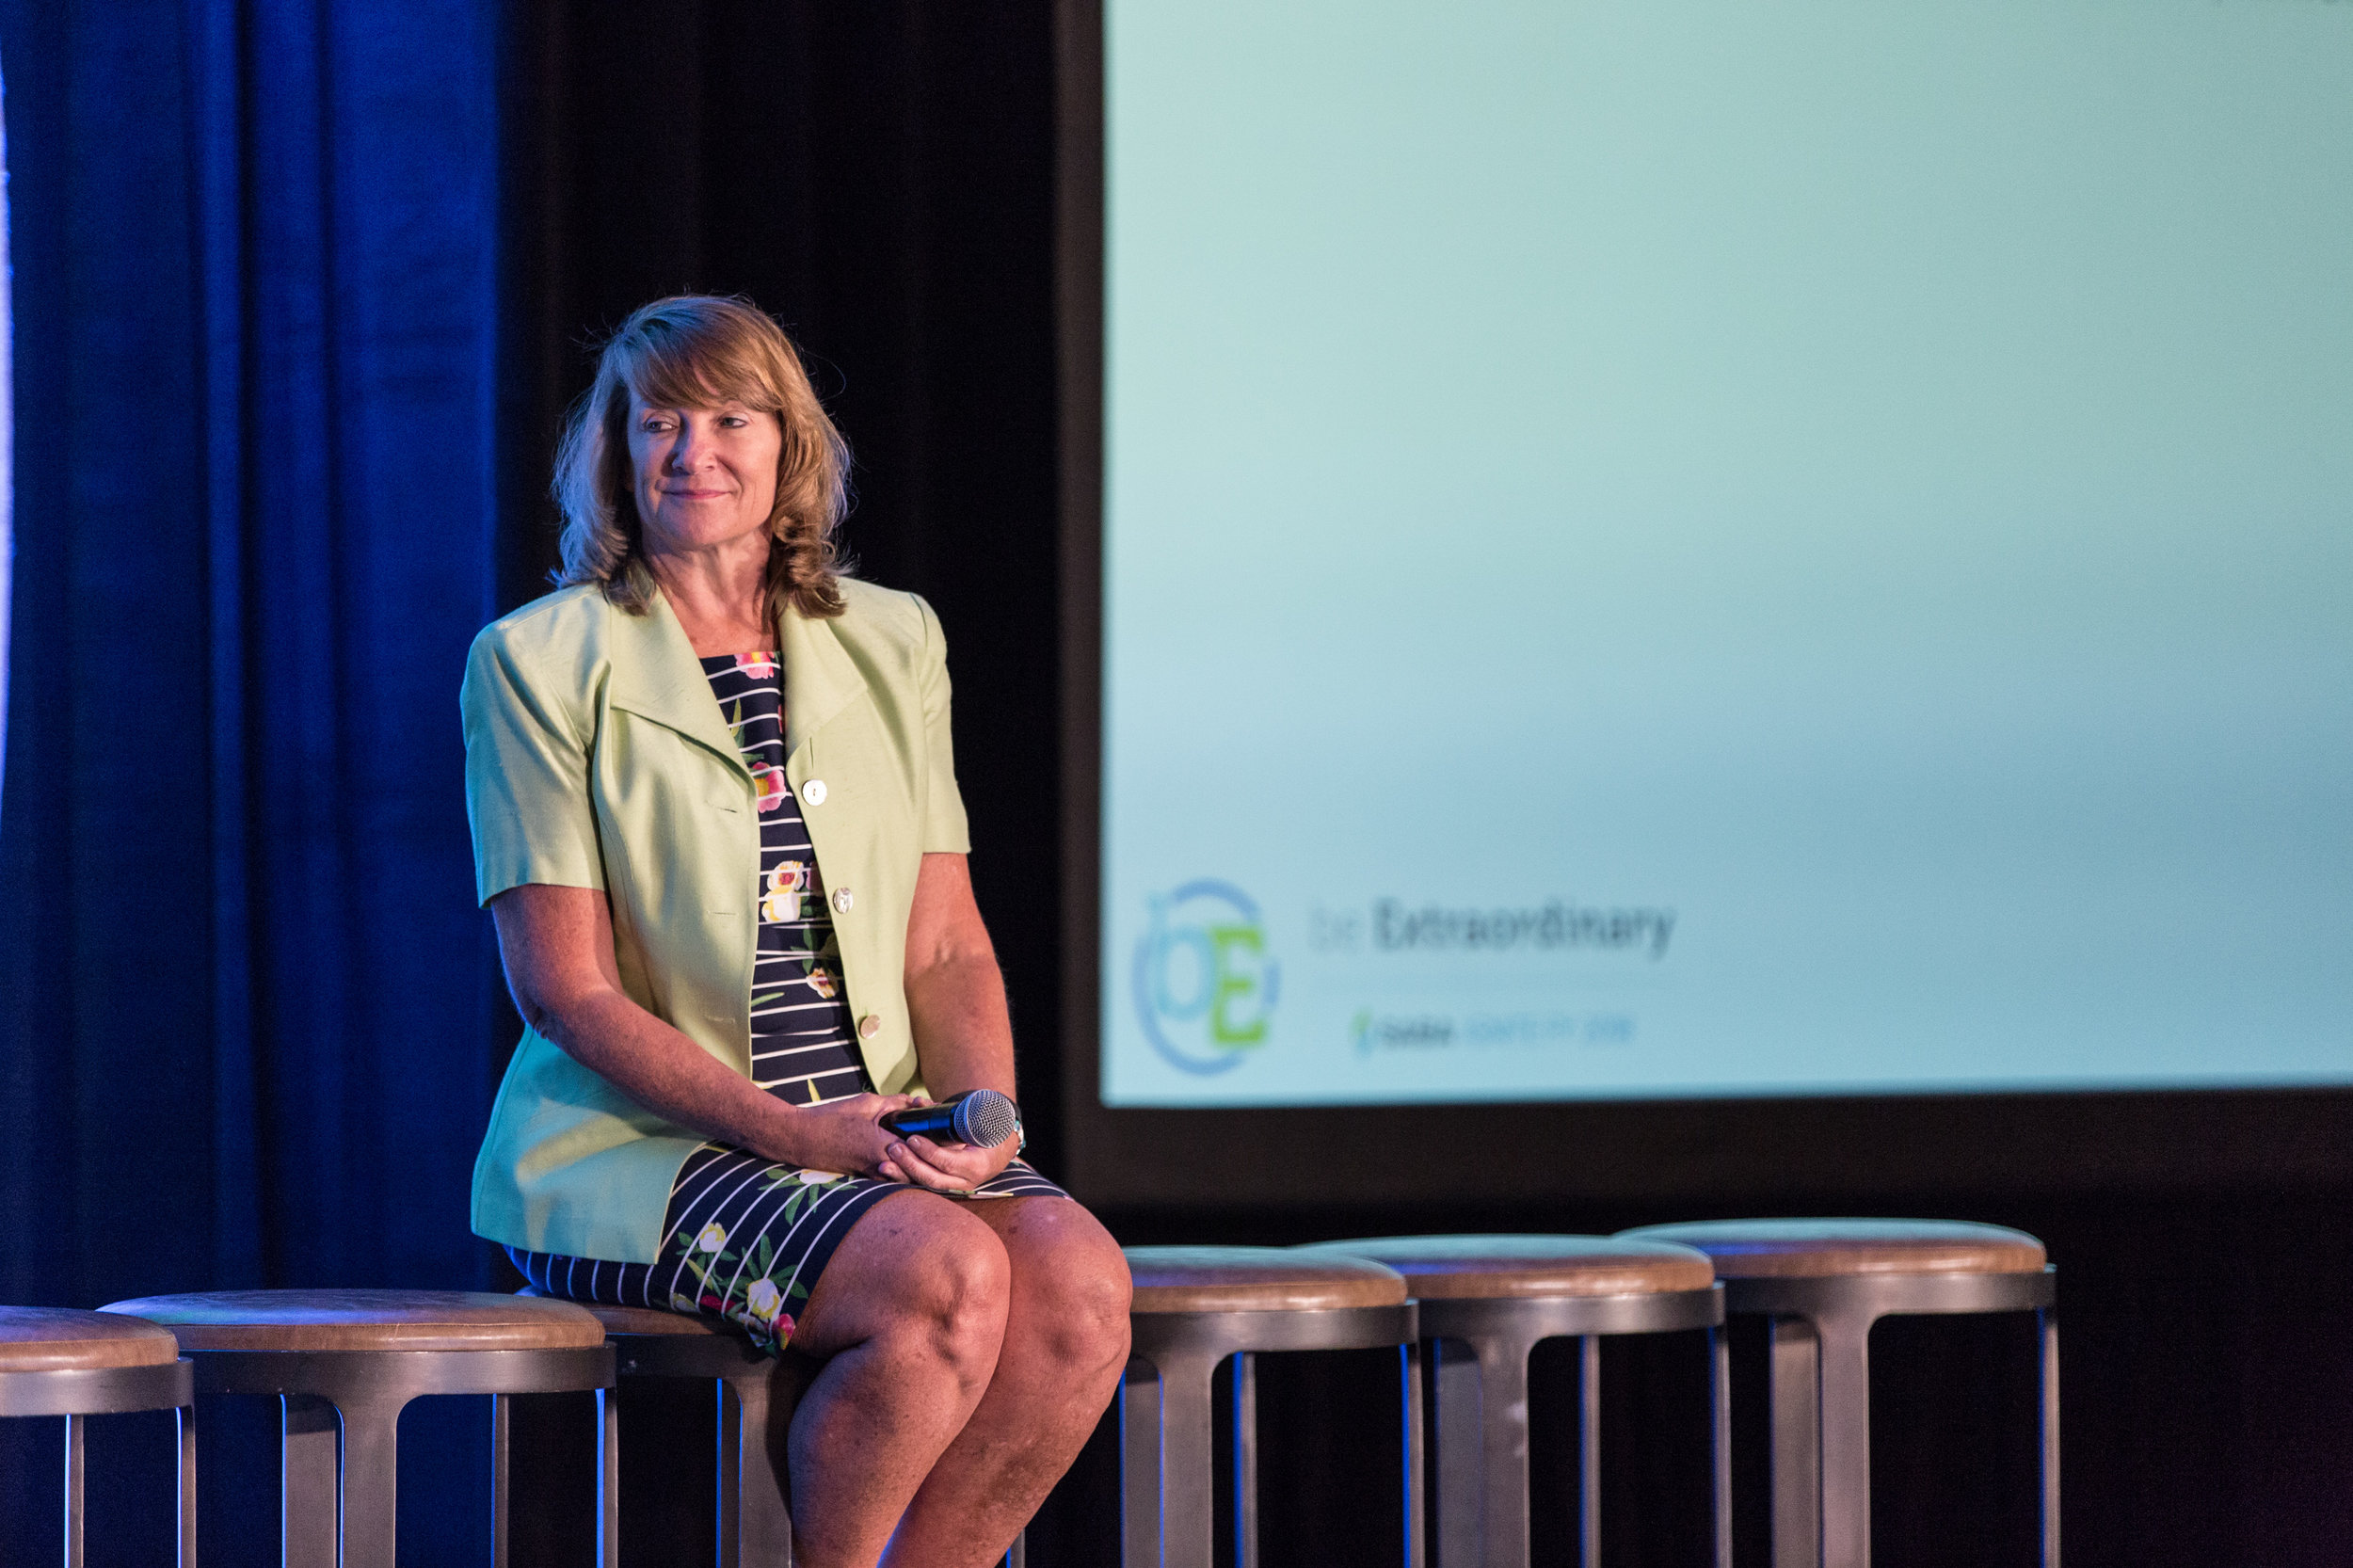 Debbie Shotwell of Saba, offers strategies for a work culture of equity.